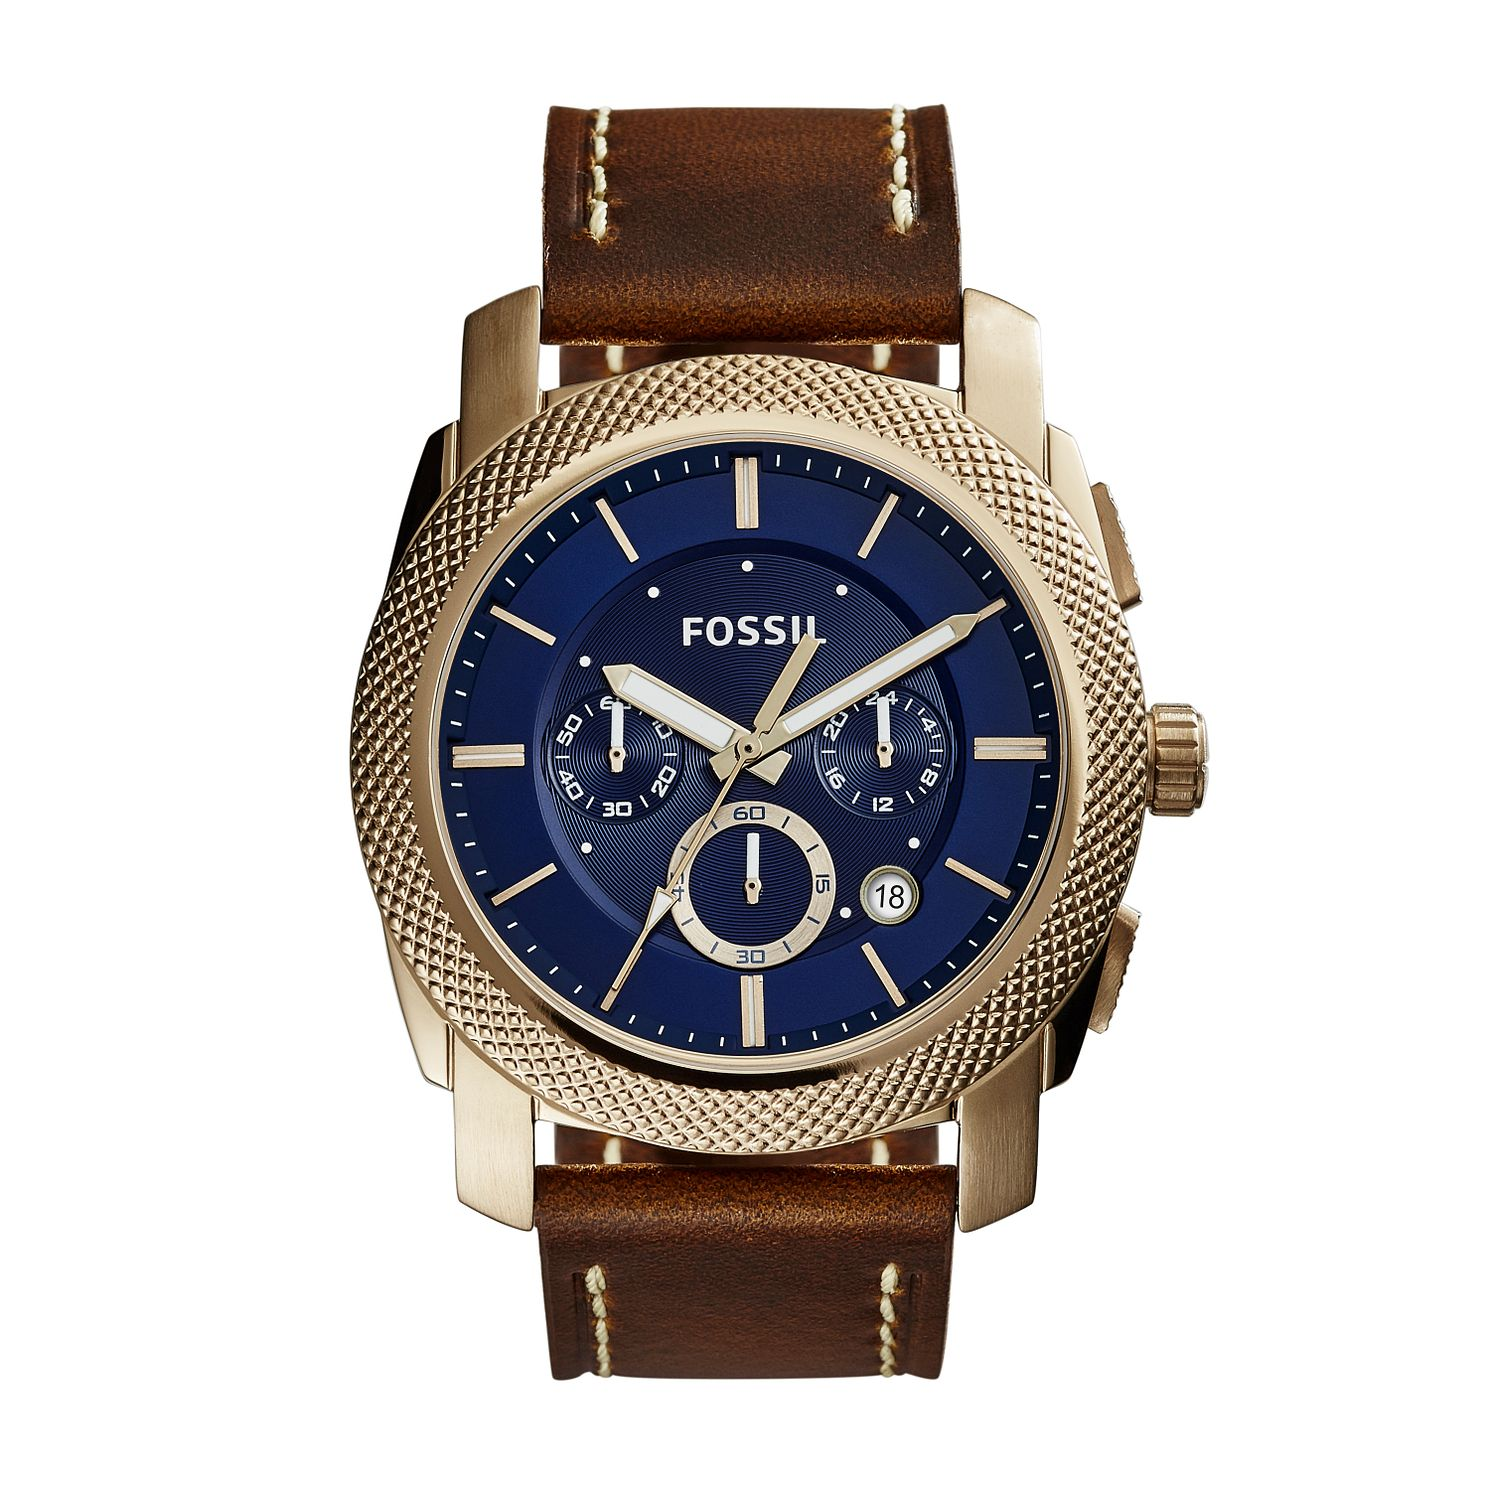 Fossil Machine Chronograph Brown Leather Strap Watch - Product number 2610957